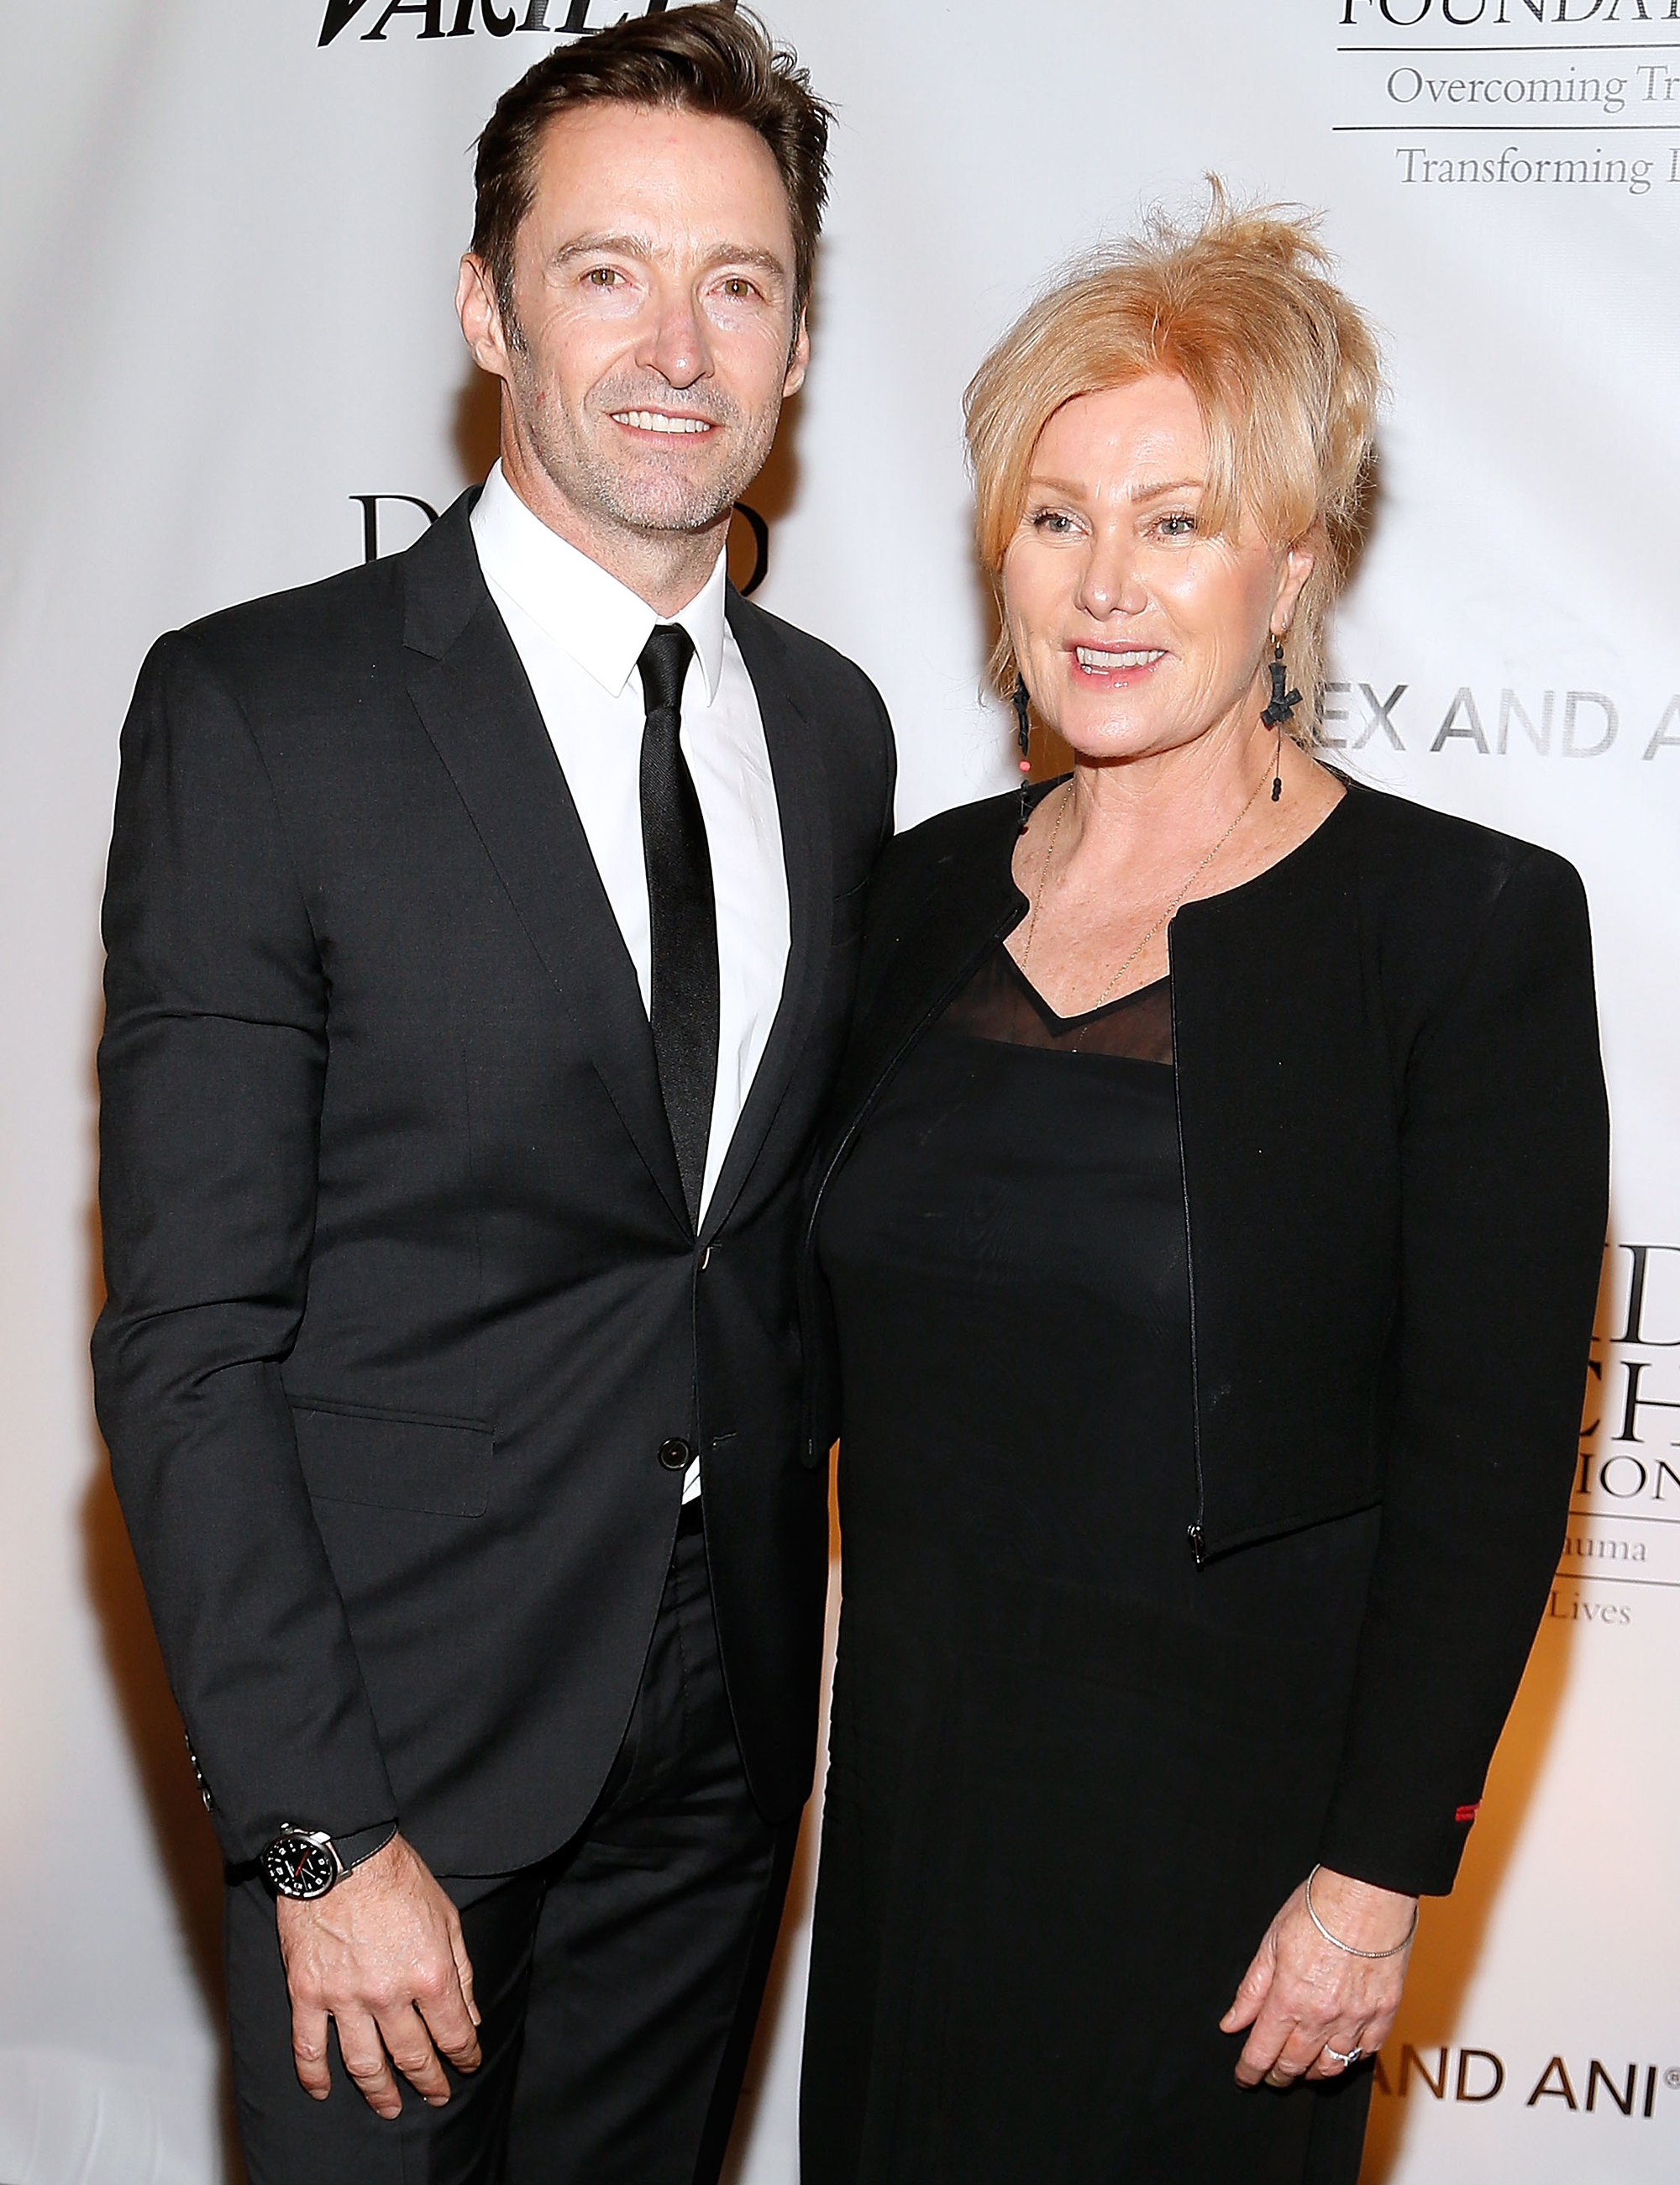 WASHINGTON, DC - JUNE 05:  Hugh Jackman (L) and Deborra-Lee Furness attend the National Night of Laughter and Song event hosted by David Lynch Foundation at the John F. Kennedy Center for the Performing Arts on June 5, 2017 in Washington, DC.  (Photo by Paul Morigi/WireImage)